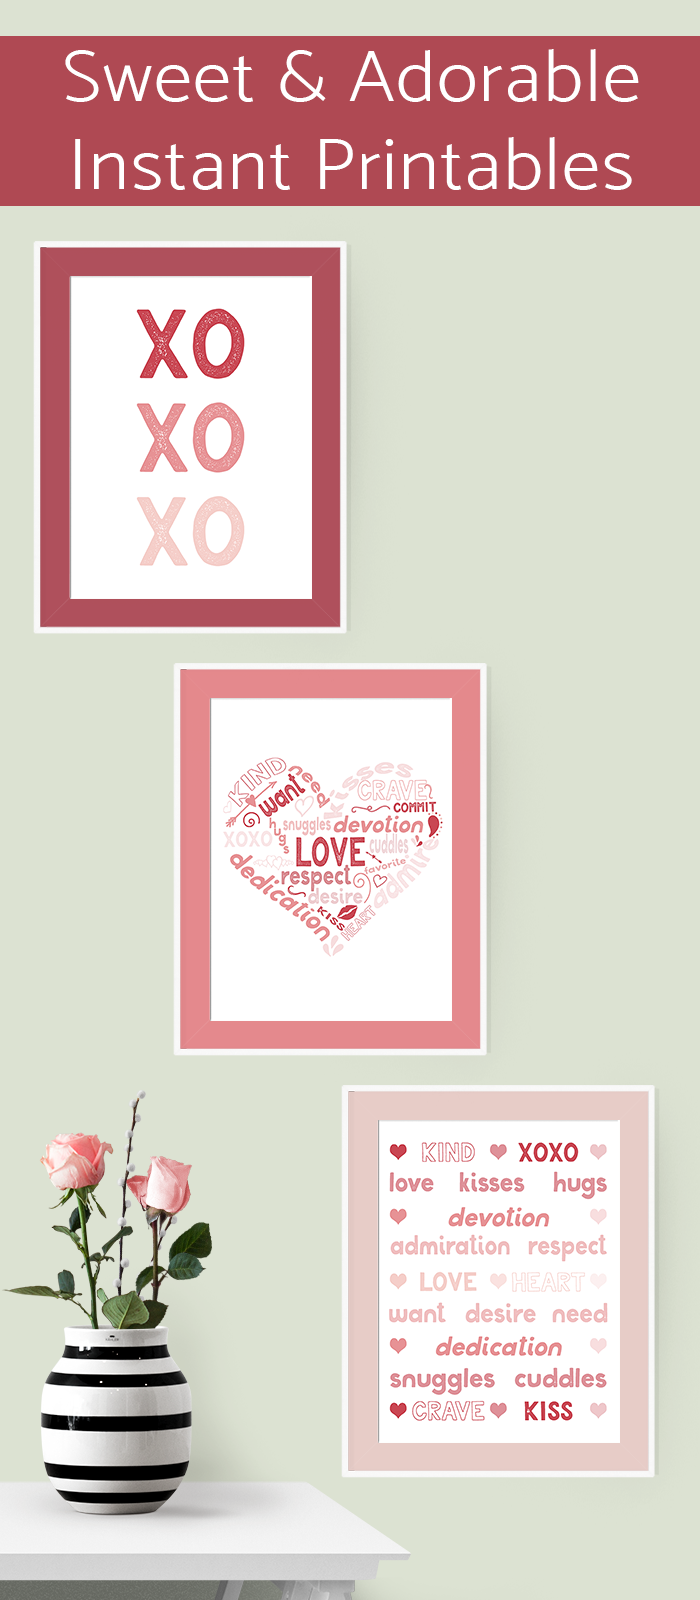 Get the free Valentine's Day printables in an adorable color palette and hand-crafted designs. #valentinesday #printable #valentinedecor #valentinescraft